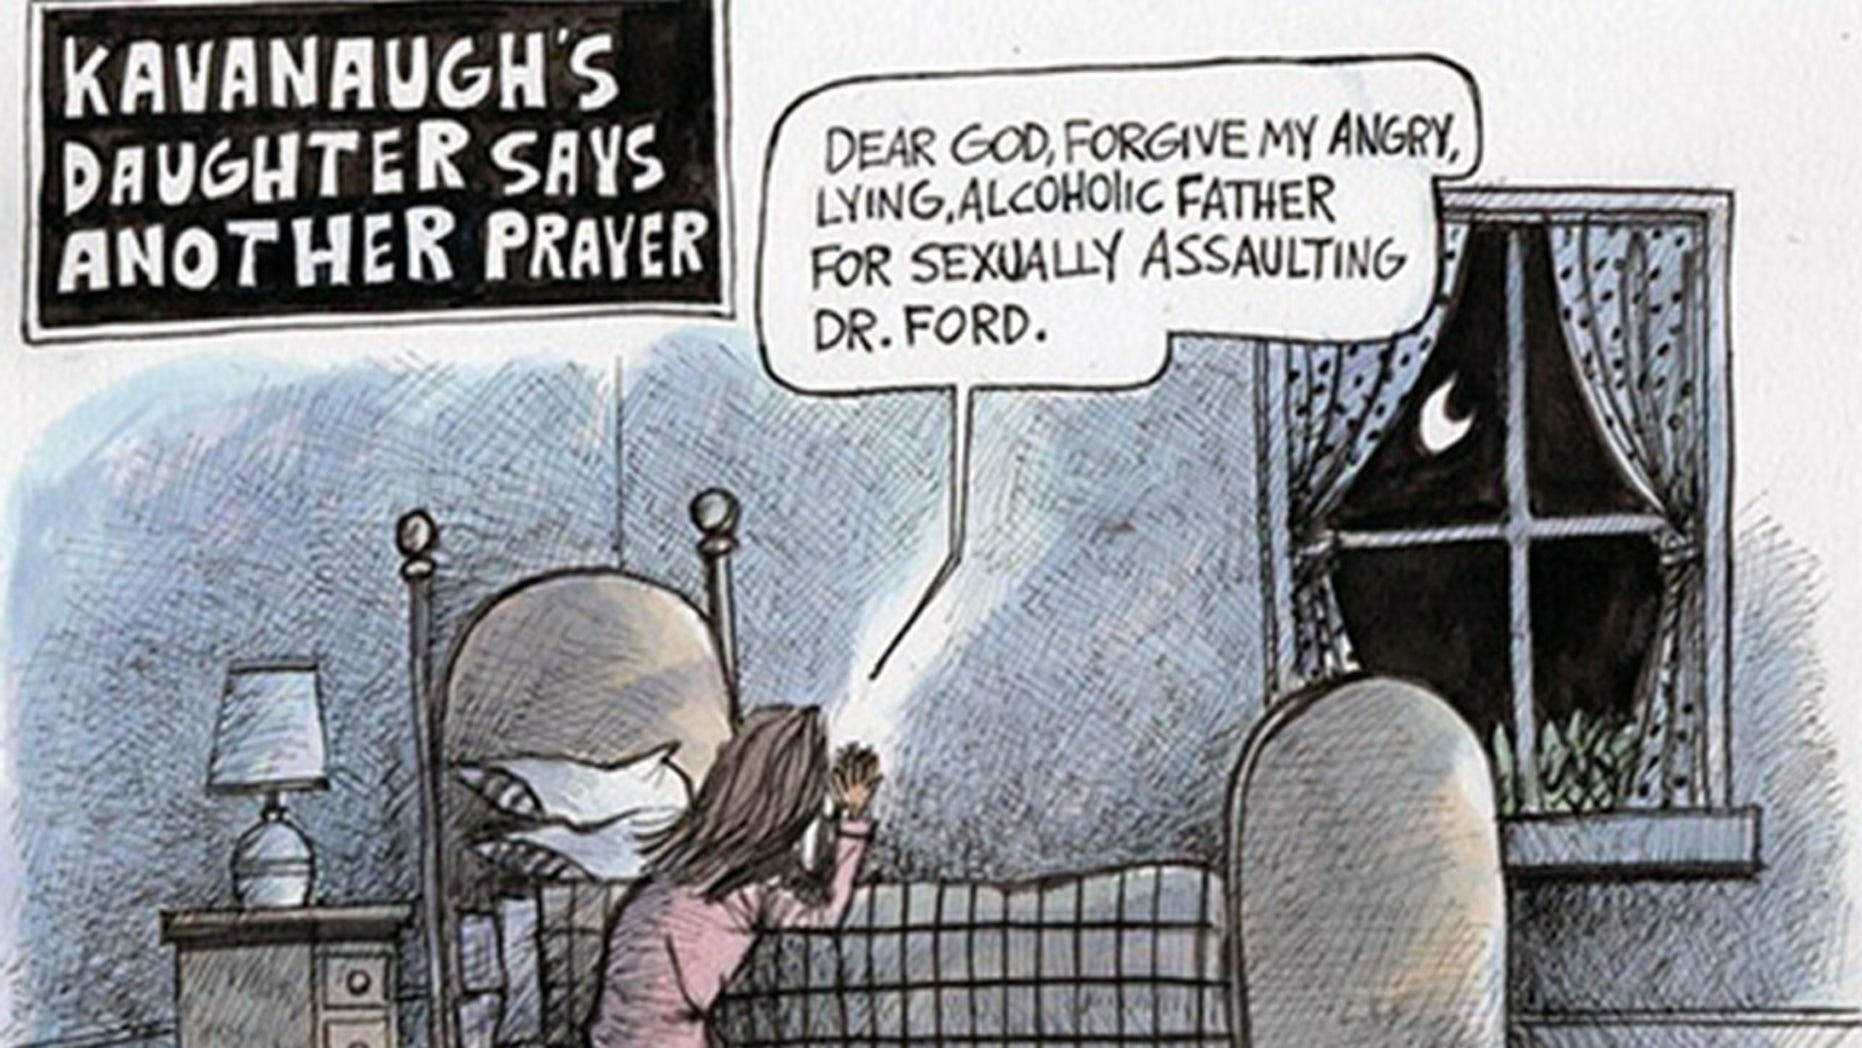 A controversial cartoon depicts Brett Kavanaugh's daughter, Liza, saying her prayers.